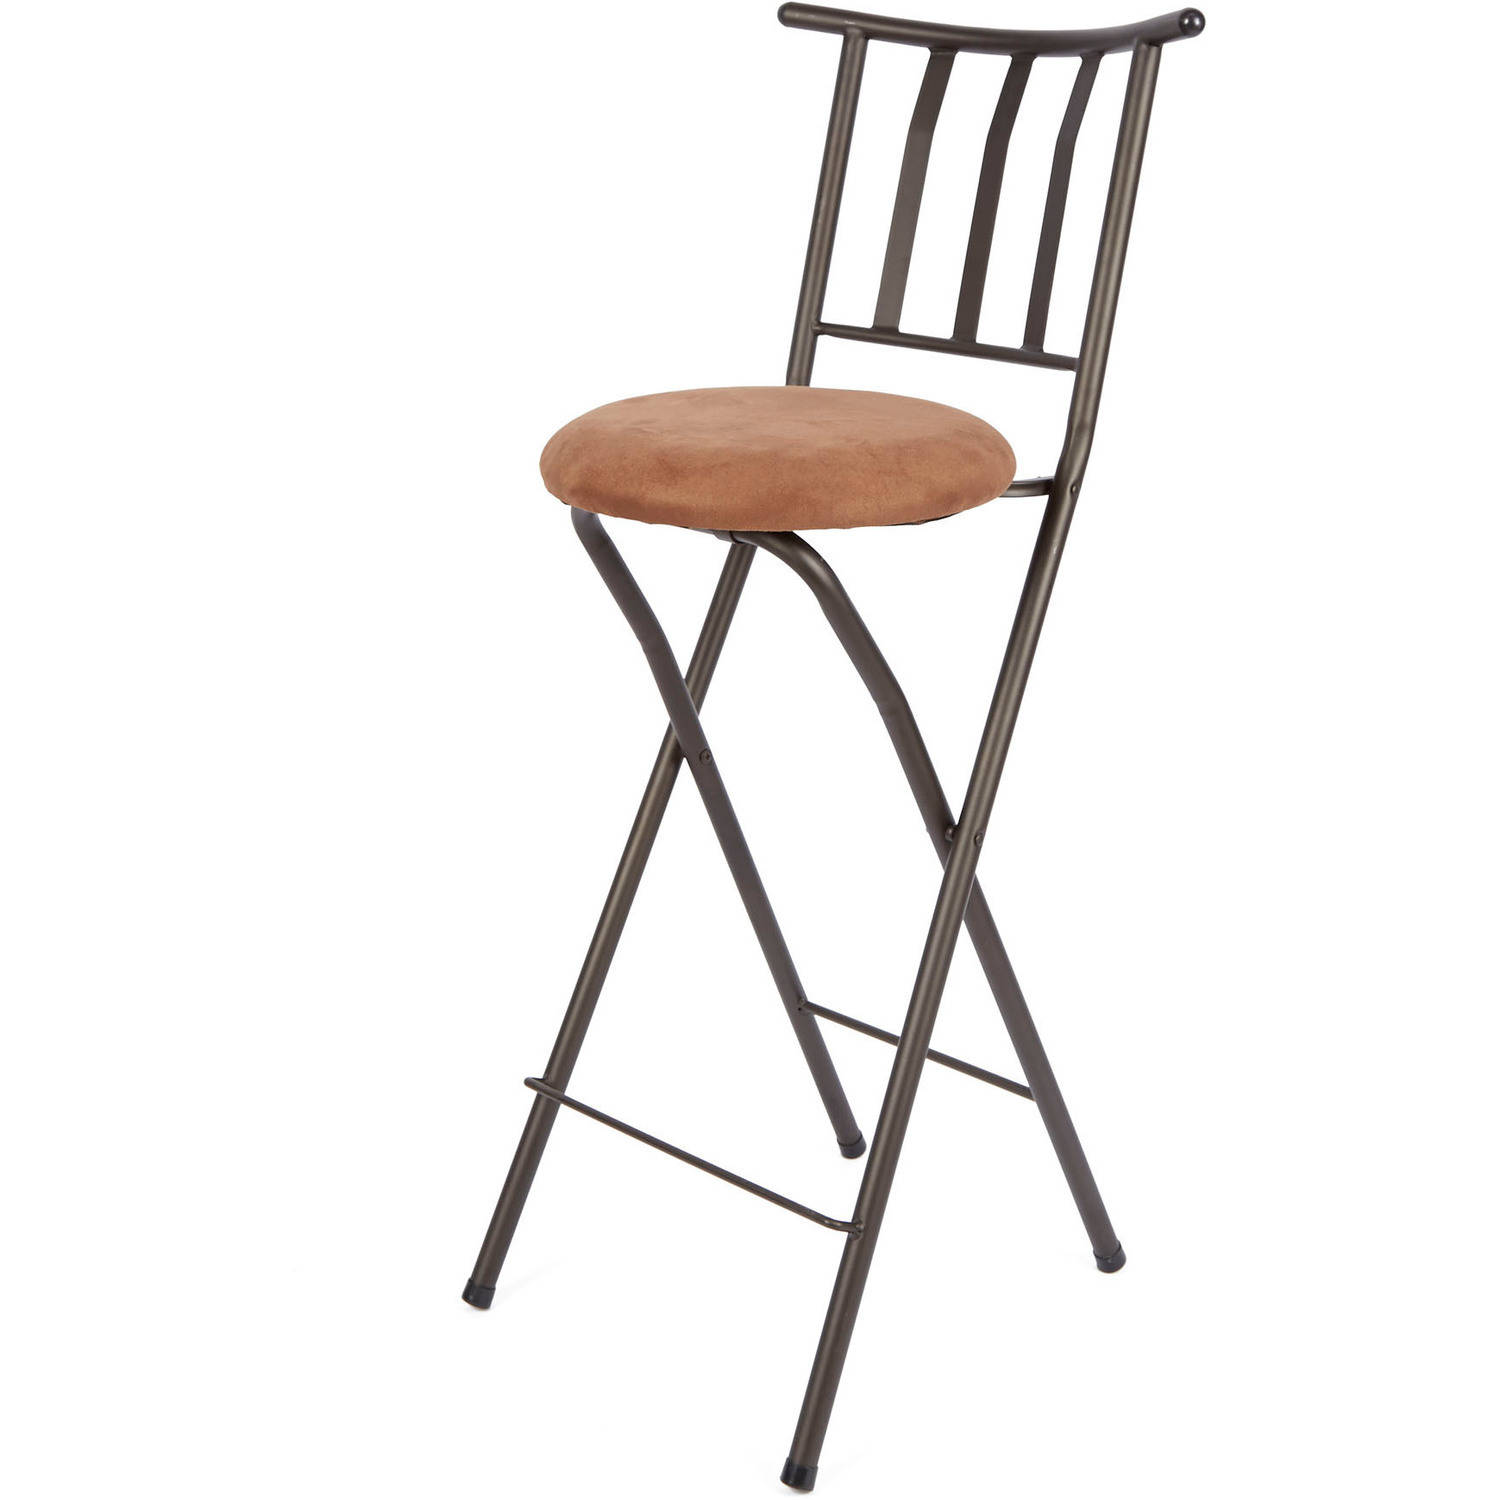 new adjustable folding bar stool bronze chair furniture x slat back 30 ebay. Black Bedroom Furniture Sets. Home Design Ideas